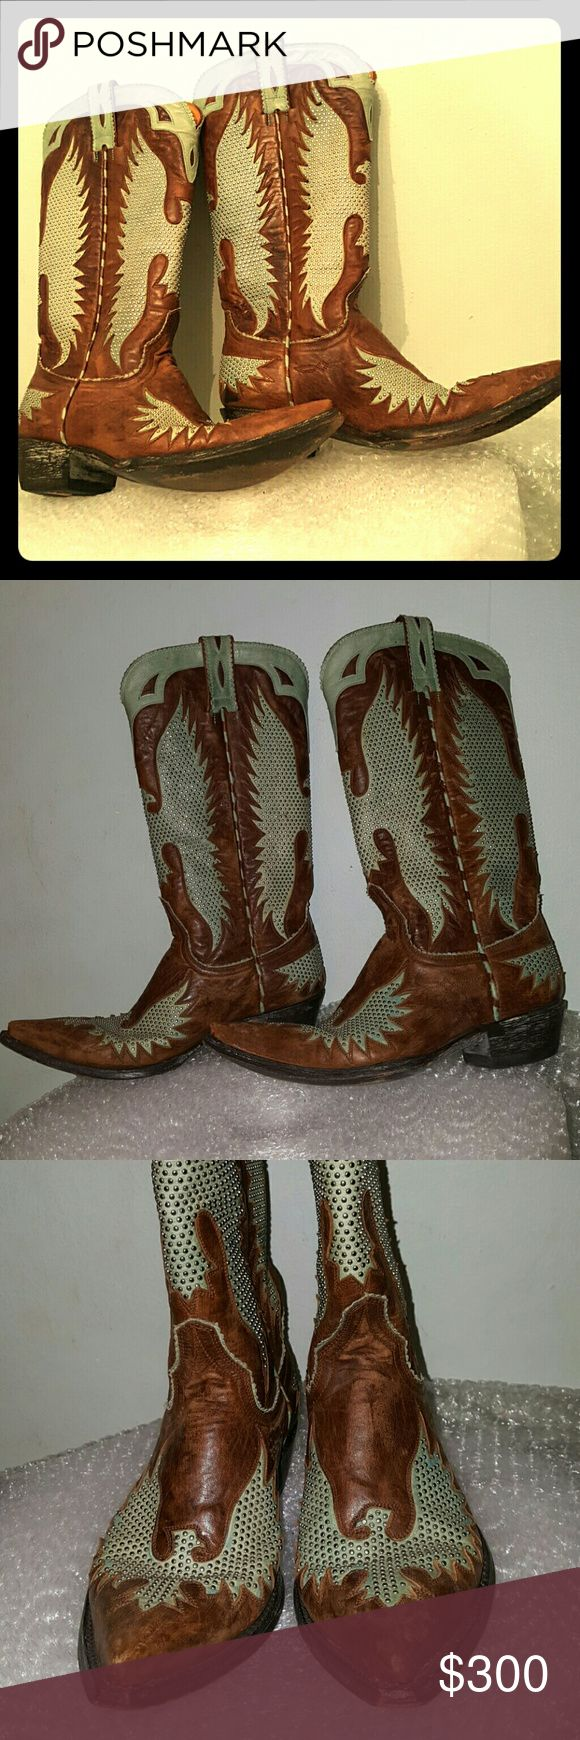 "Old Gringo 1276-4 SS Iron Eagle 6.5 B aqua western Made in Leon, Mexico. Distinctive Old Gringo's Eagle design. Goat leather with aqua underlay and overlays. Myriad of silver studs on aqua underlay. 1 3/4 "" Cuban heel. Leather soles. Tan leather lining. Left boot has a small scub at the toe. Moderate wear to the heel & sole. Sold out style. Some light blue staying on aqua parts. Old Gringo Shoes Heeled Boots"